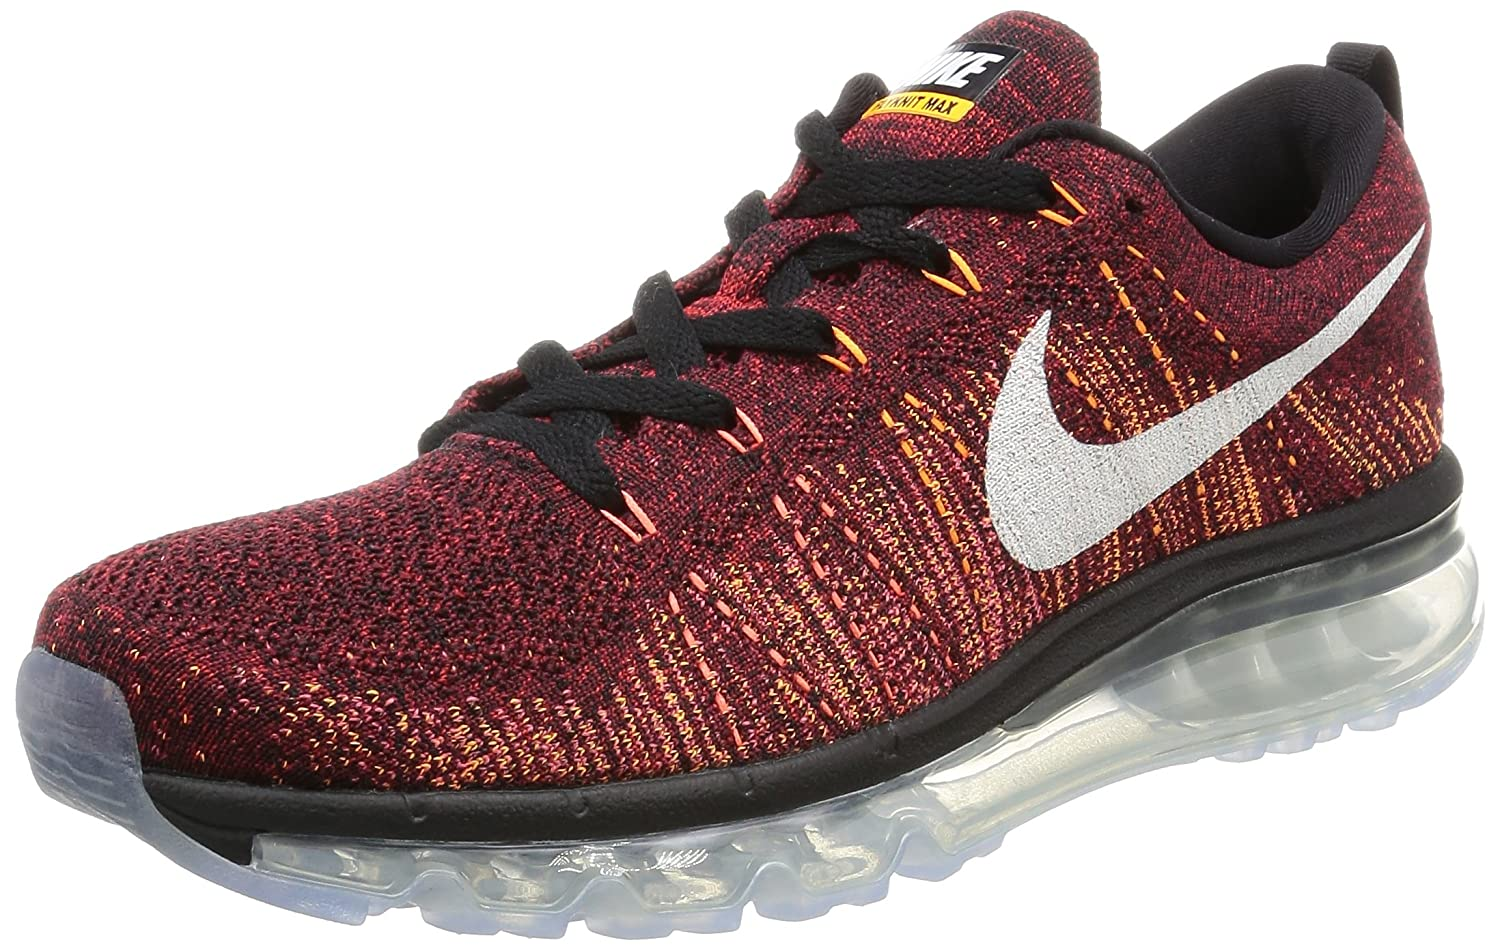 finest selection d984c 1c27e Amazon.com | Nike Flyknit Air Max 620469-011 Black/Red/White/Ember Glow  Men's Running Shoes (Size 11) | Road Running